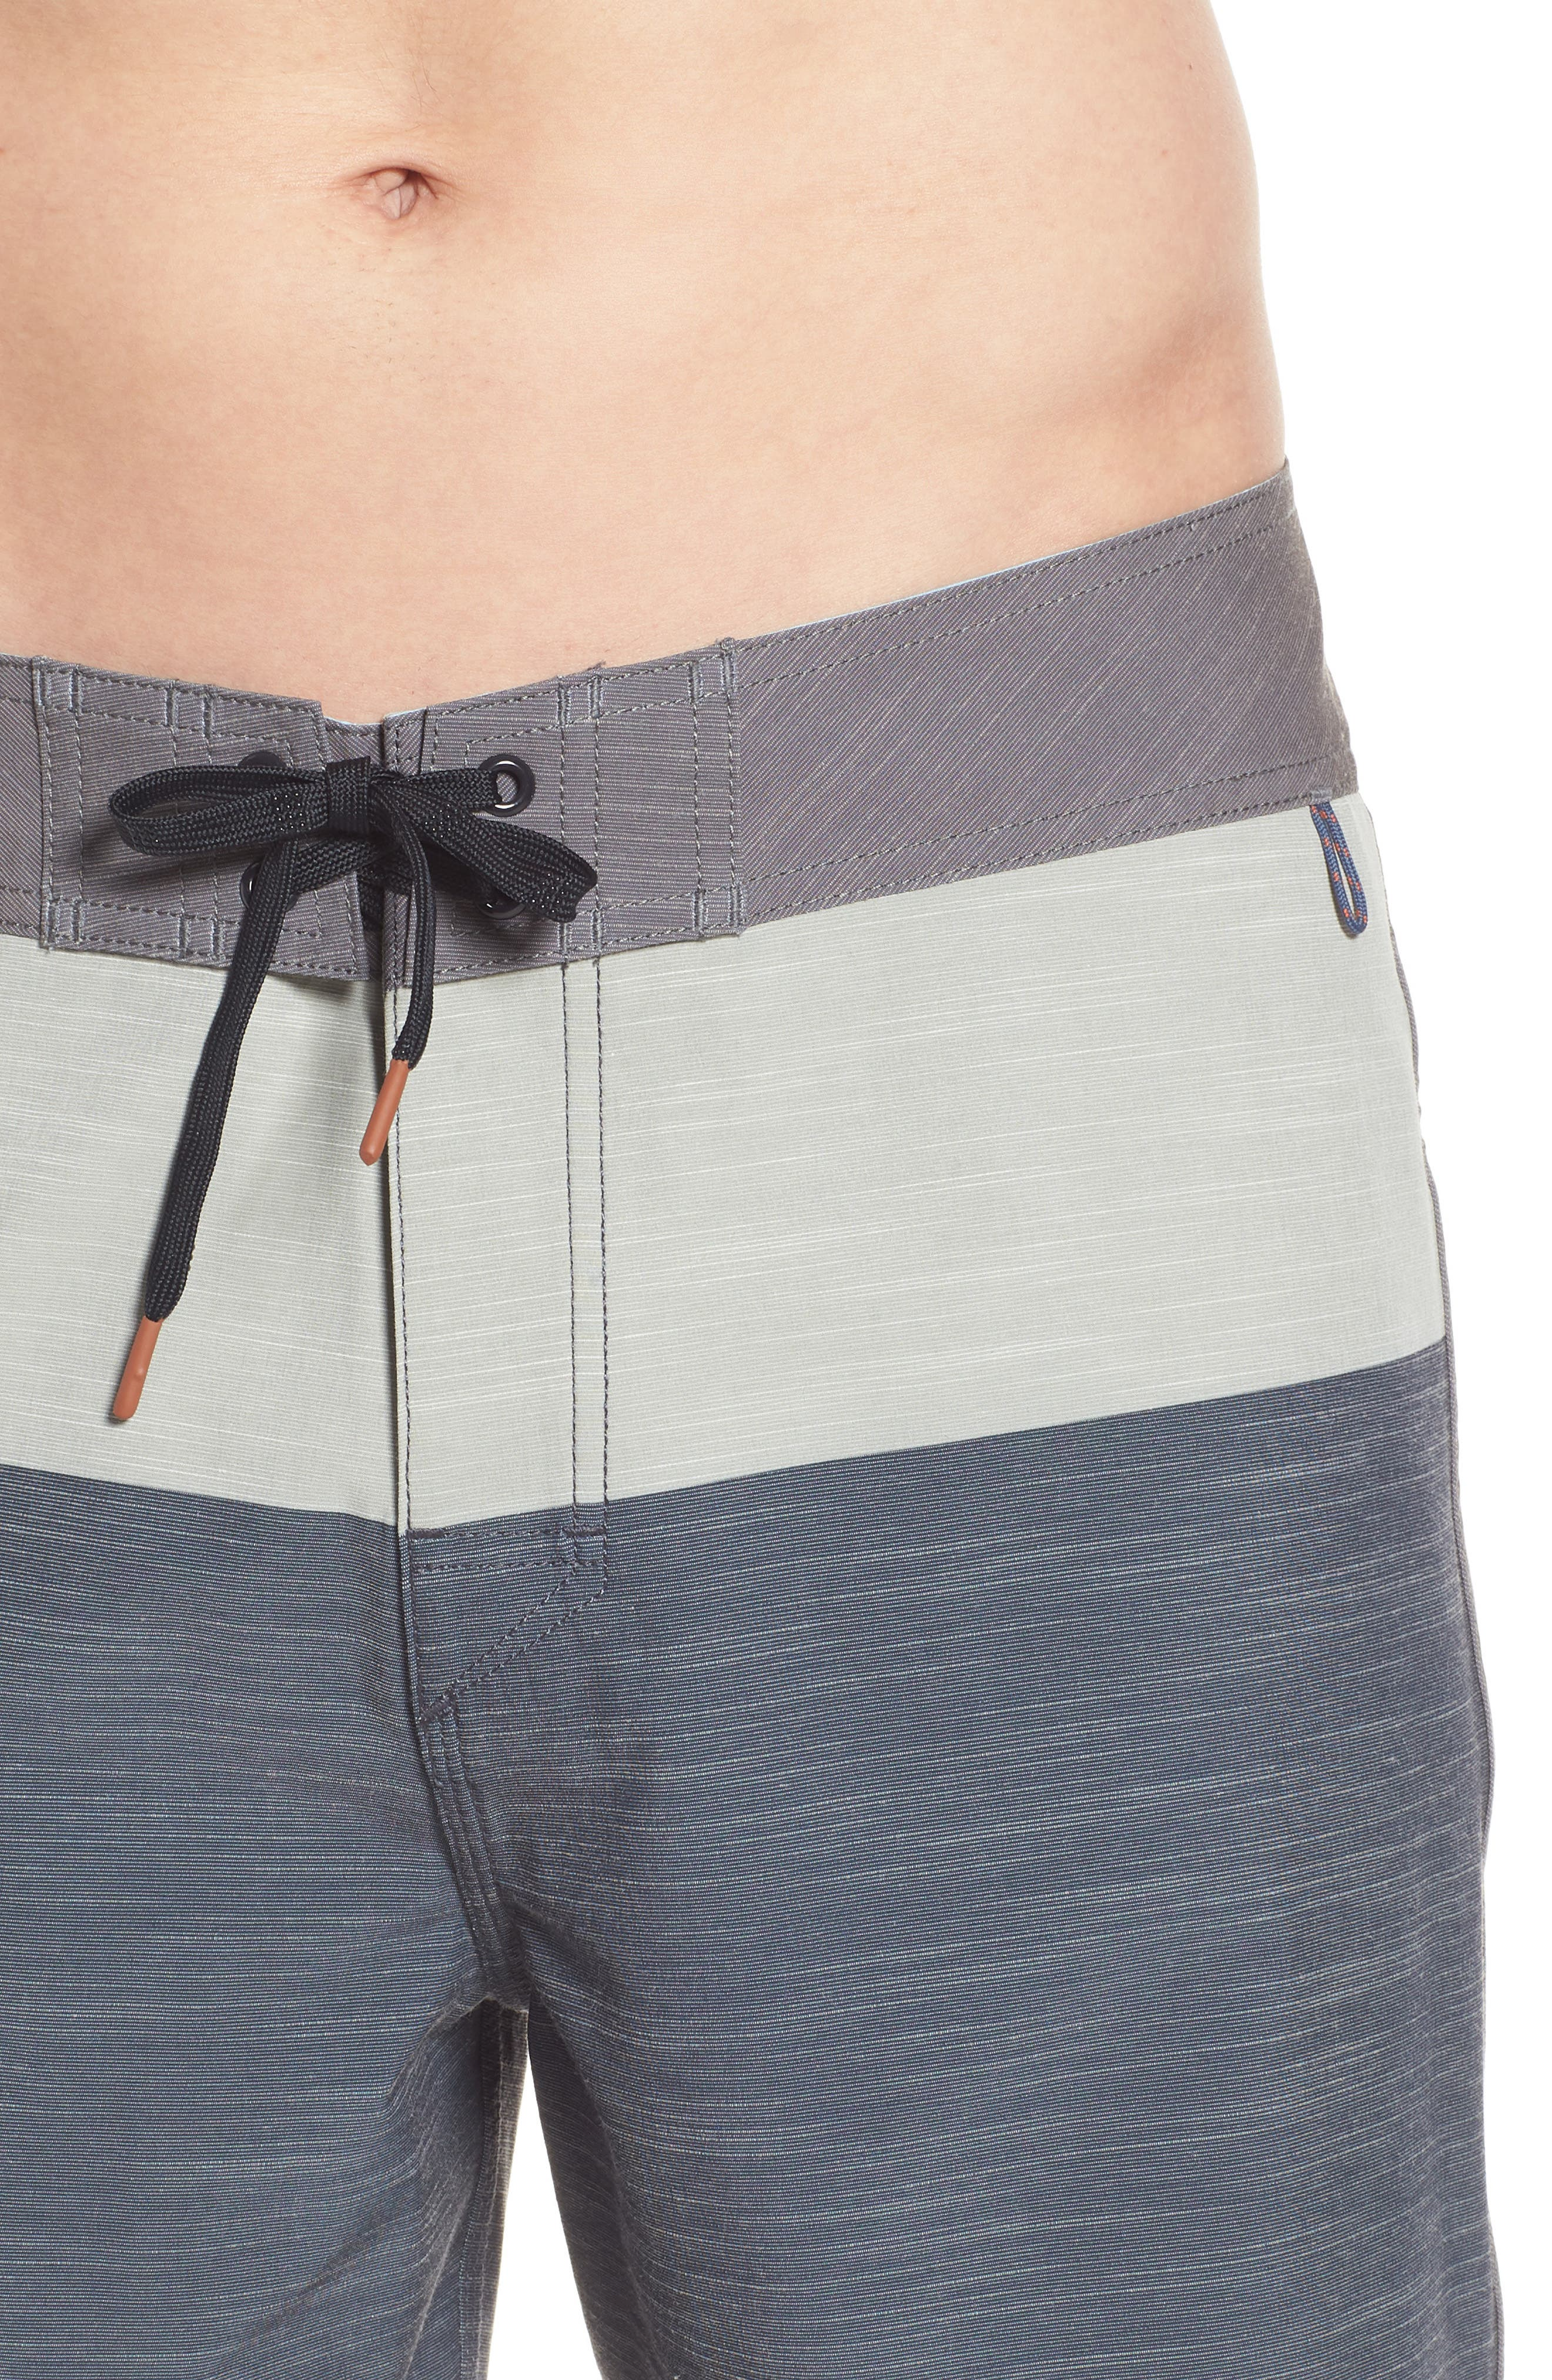 Beachcomber Board Shorts,                             Alternate thumbnail 4, color,                             Charcoal